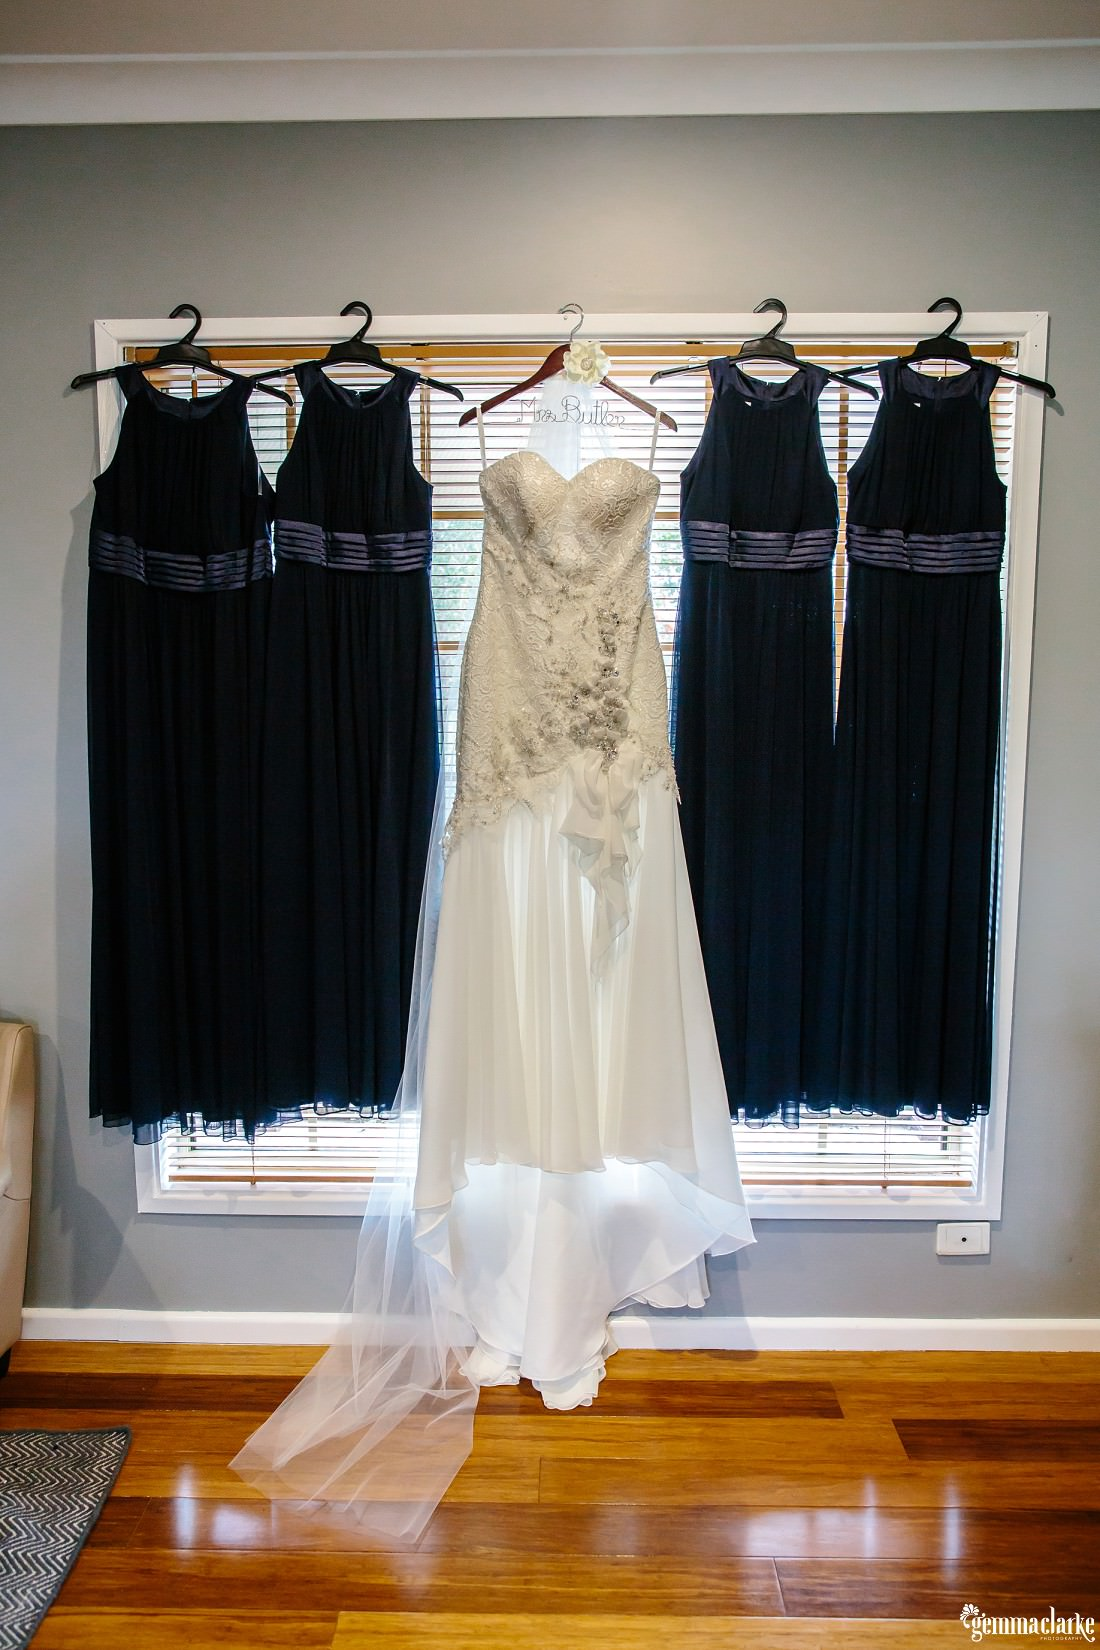 An off white bridal gown and four navy bridesmaids dresses on hangers, hanging in a window